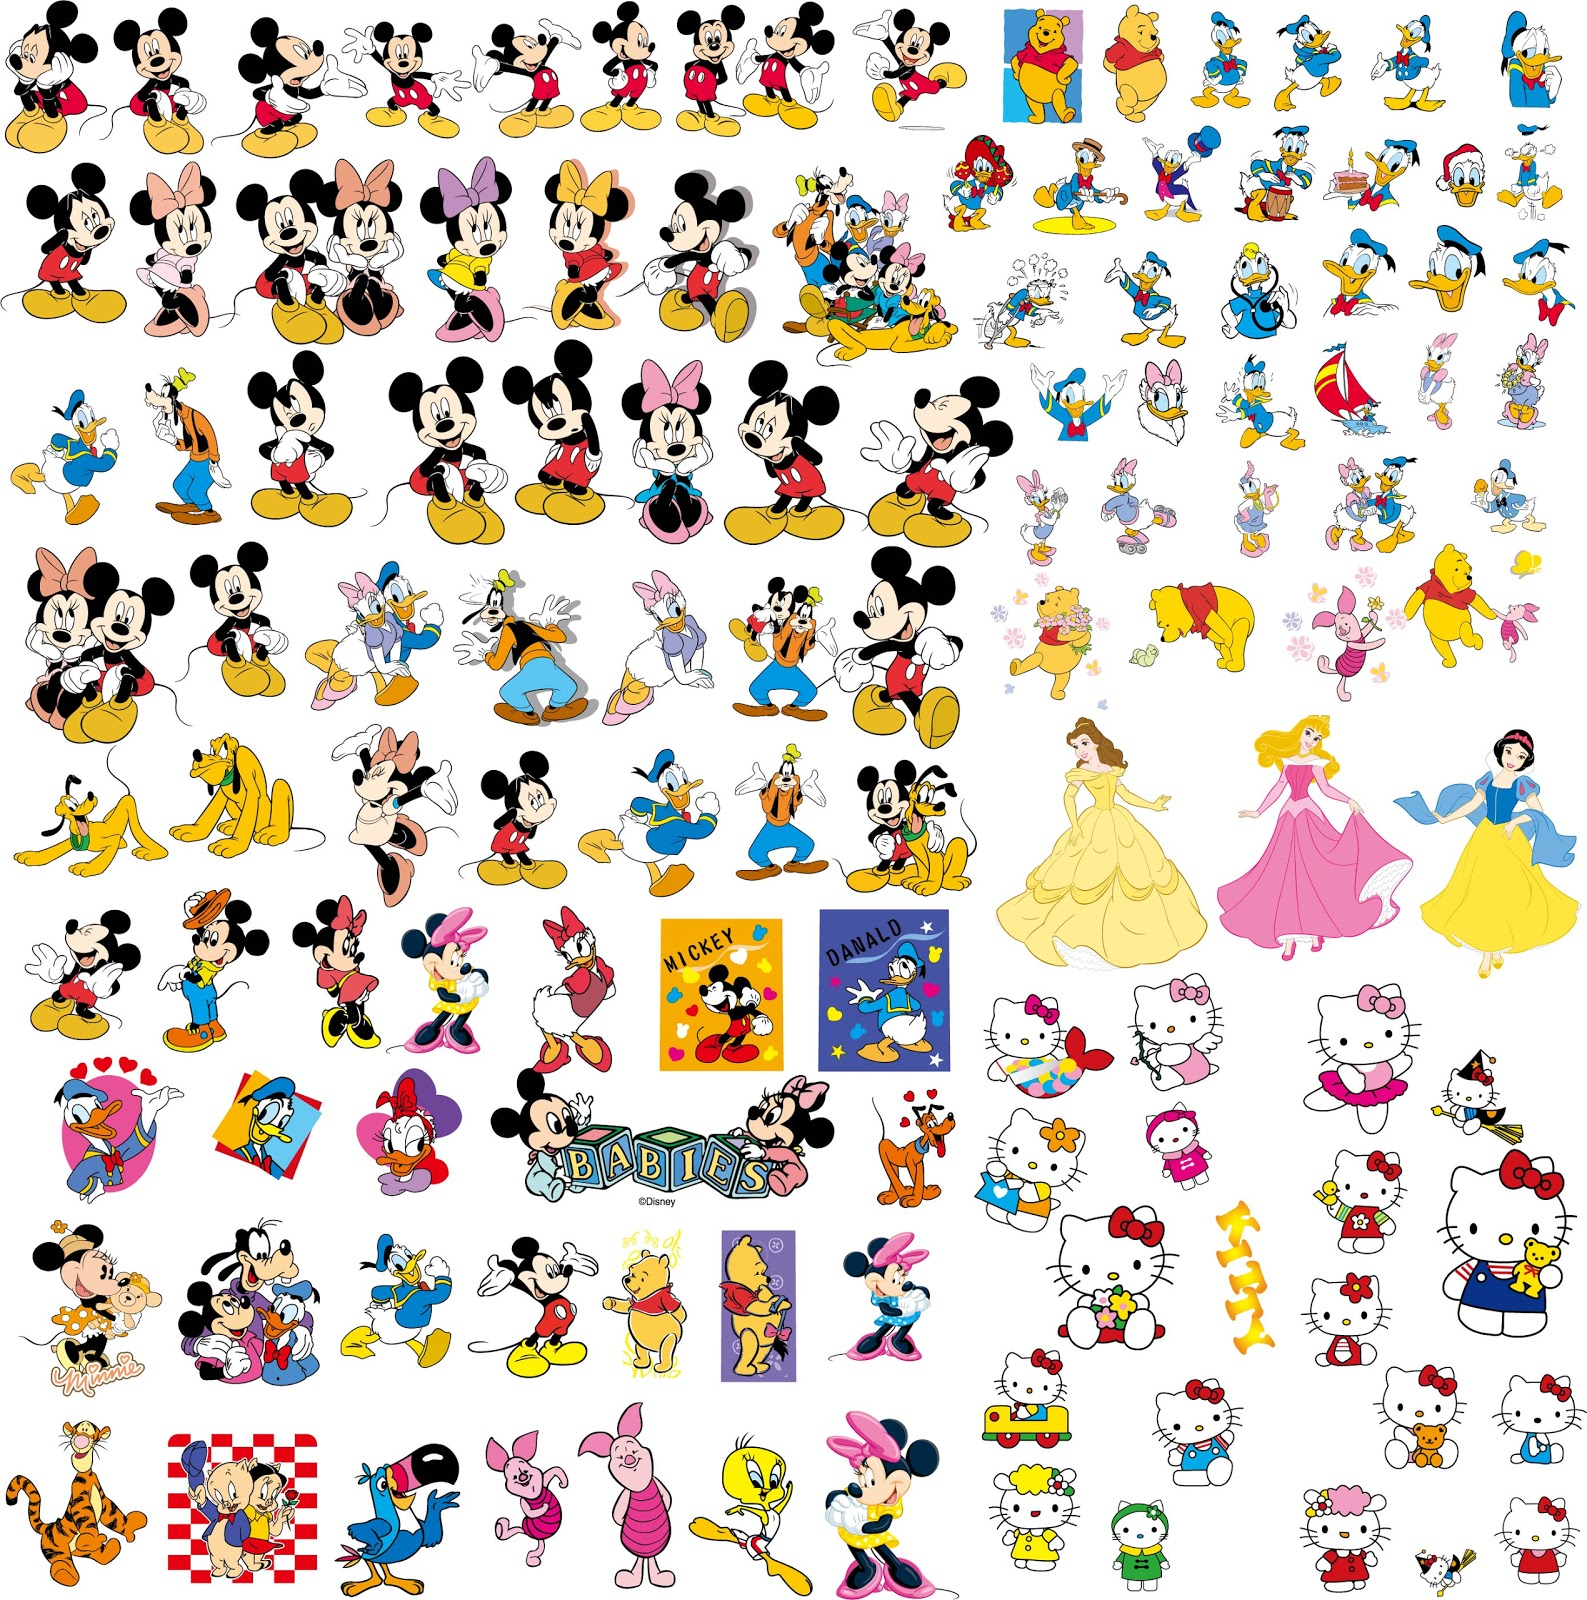 Related Image With Disney Cartoon Character Clip Art